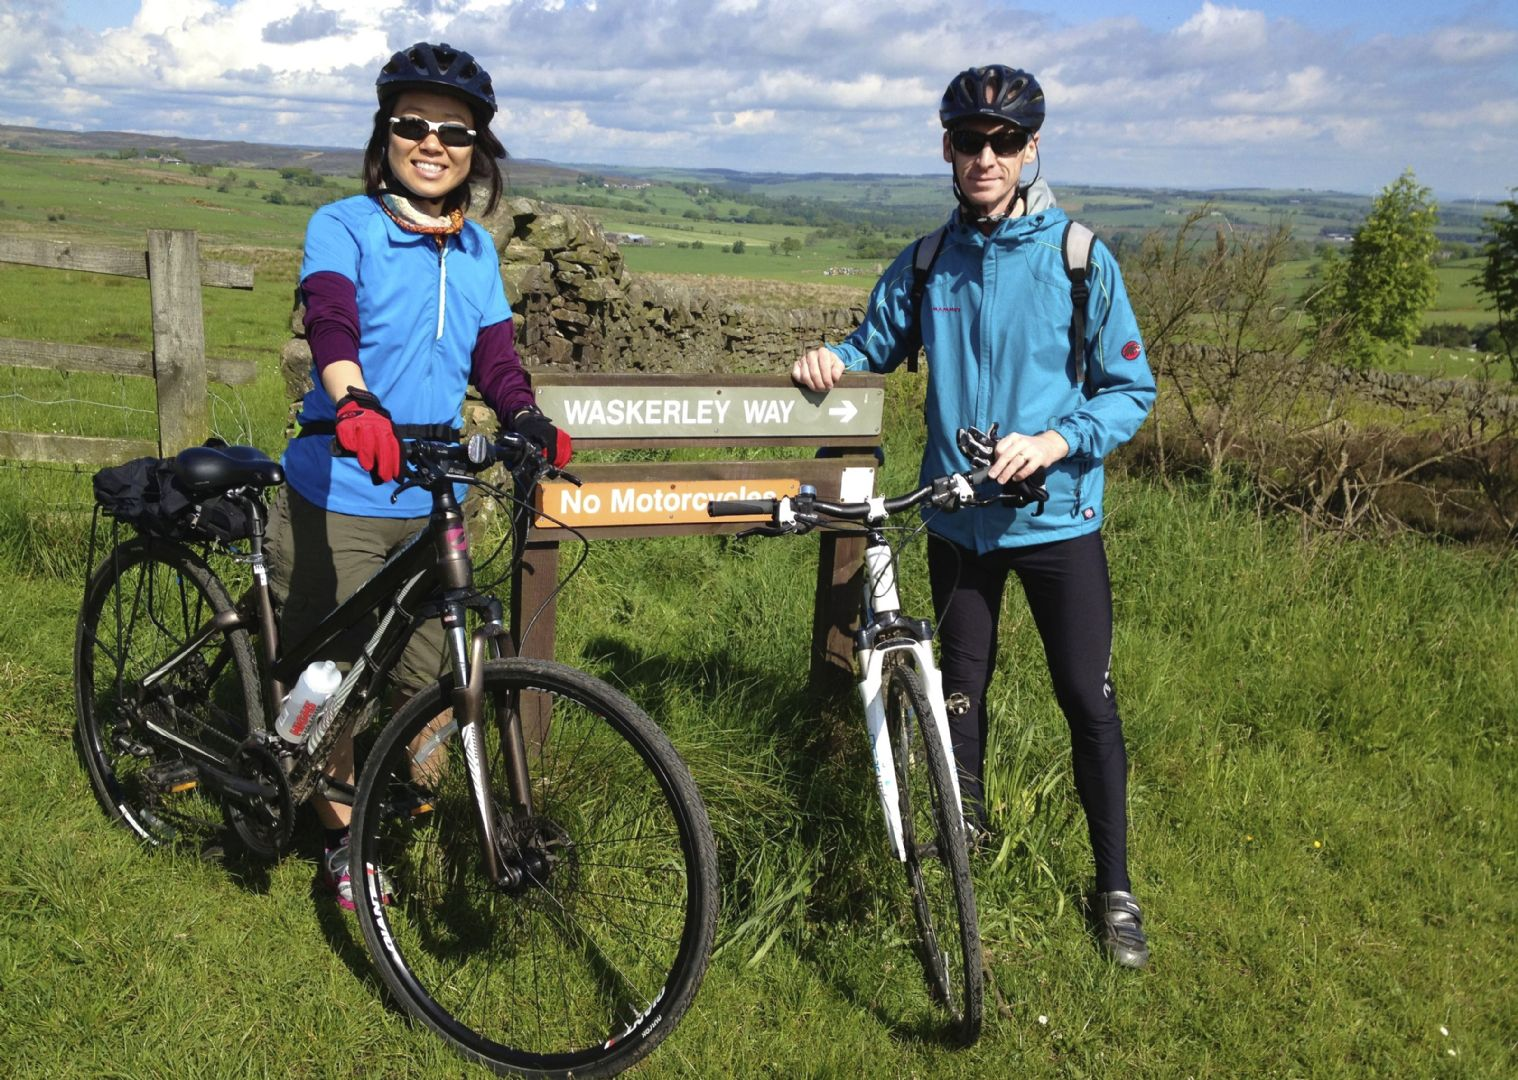 _Customer.103238.16258.jpg - UK - C2C - Coast to Coast 3 Days Cycling - Self-Guided Leisure Cycling Holiday - Leisure Cycling